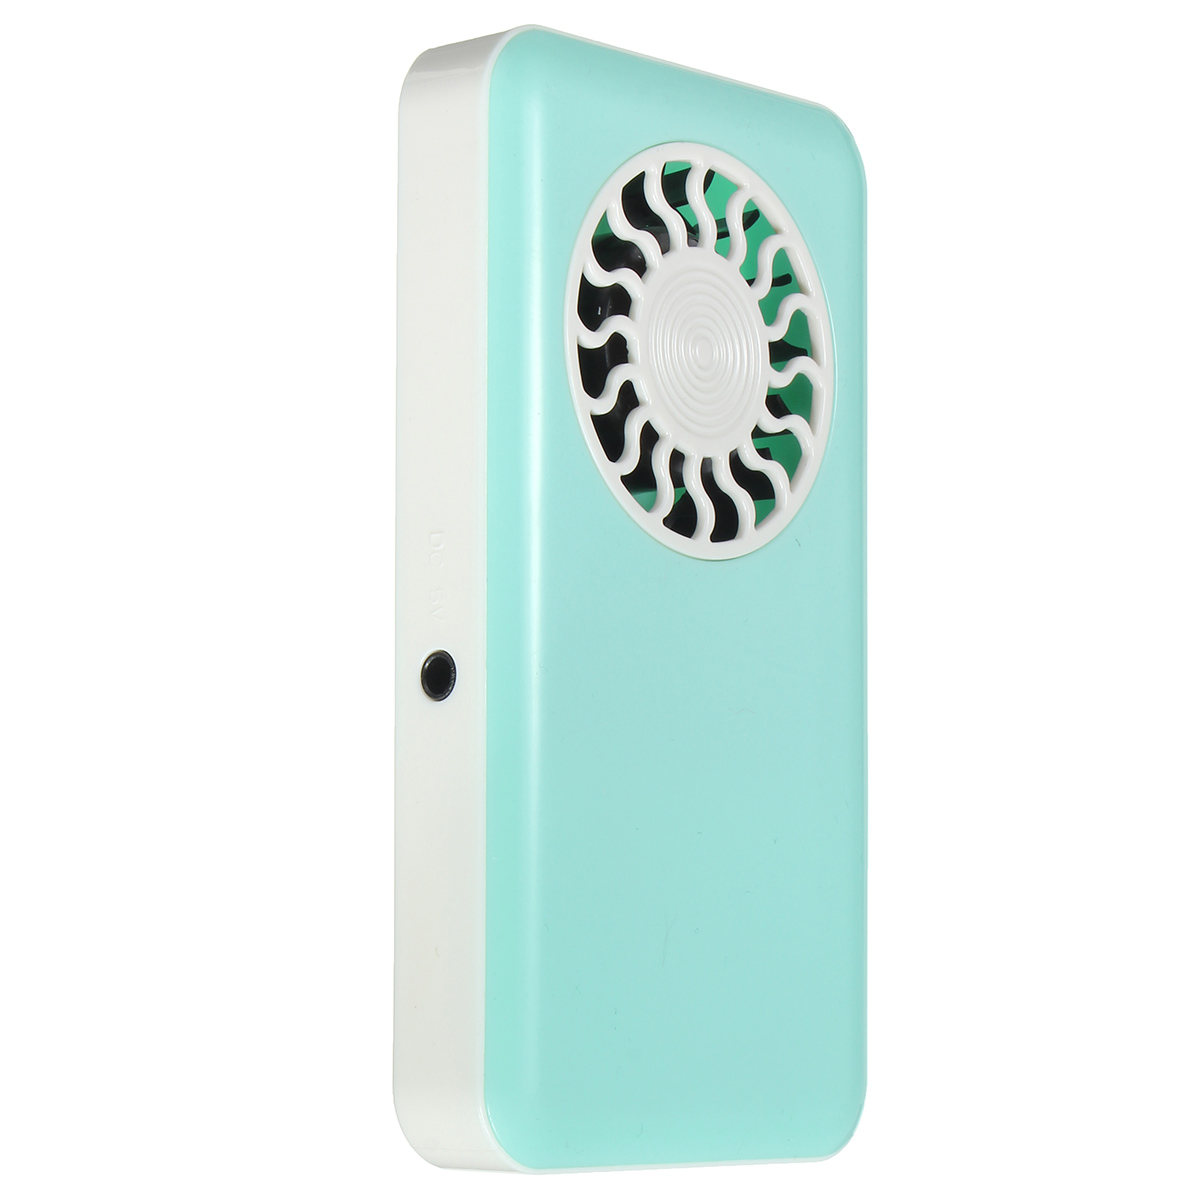 Portable Mini Fan : Portable handheld usb mini air conditioner cooler fan with